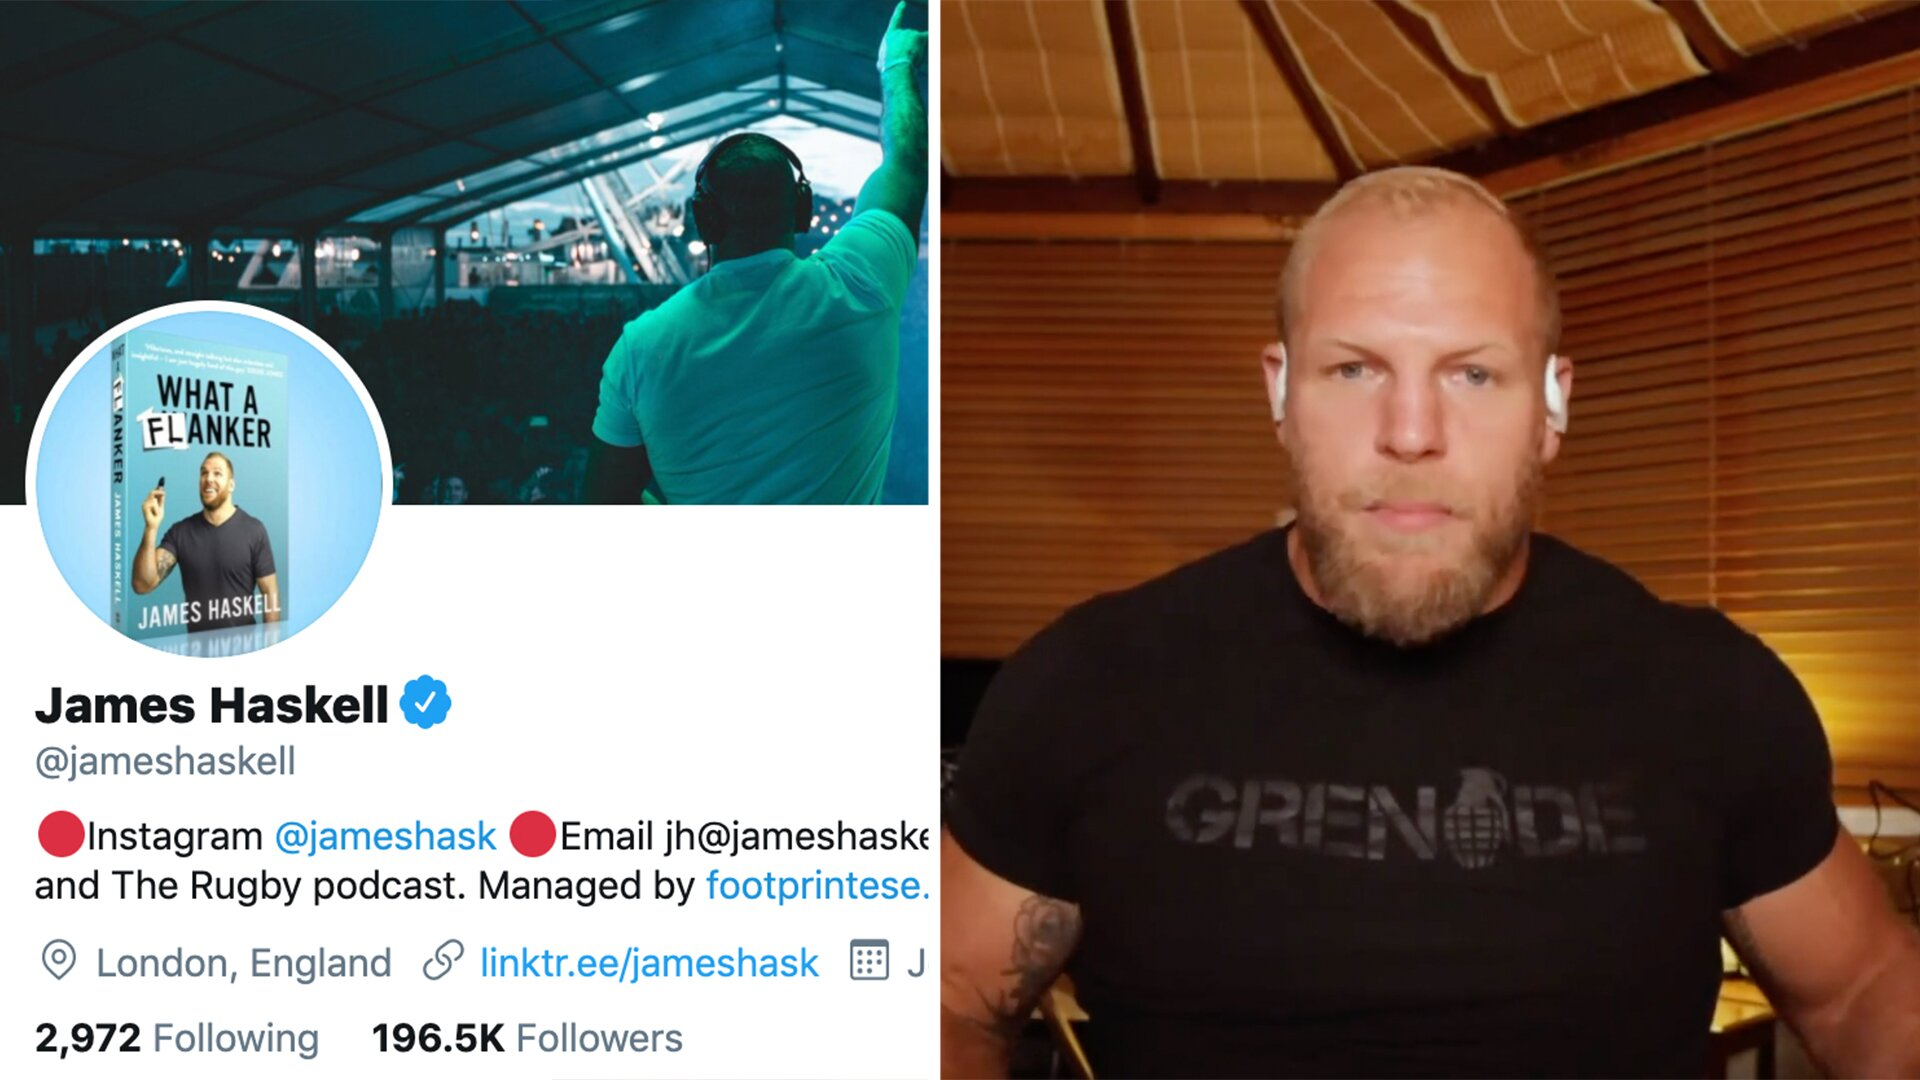 James Haskell has suggested an innovative new way to counter online trolls in sport